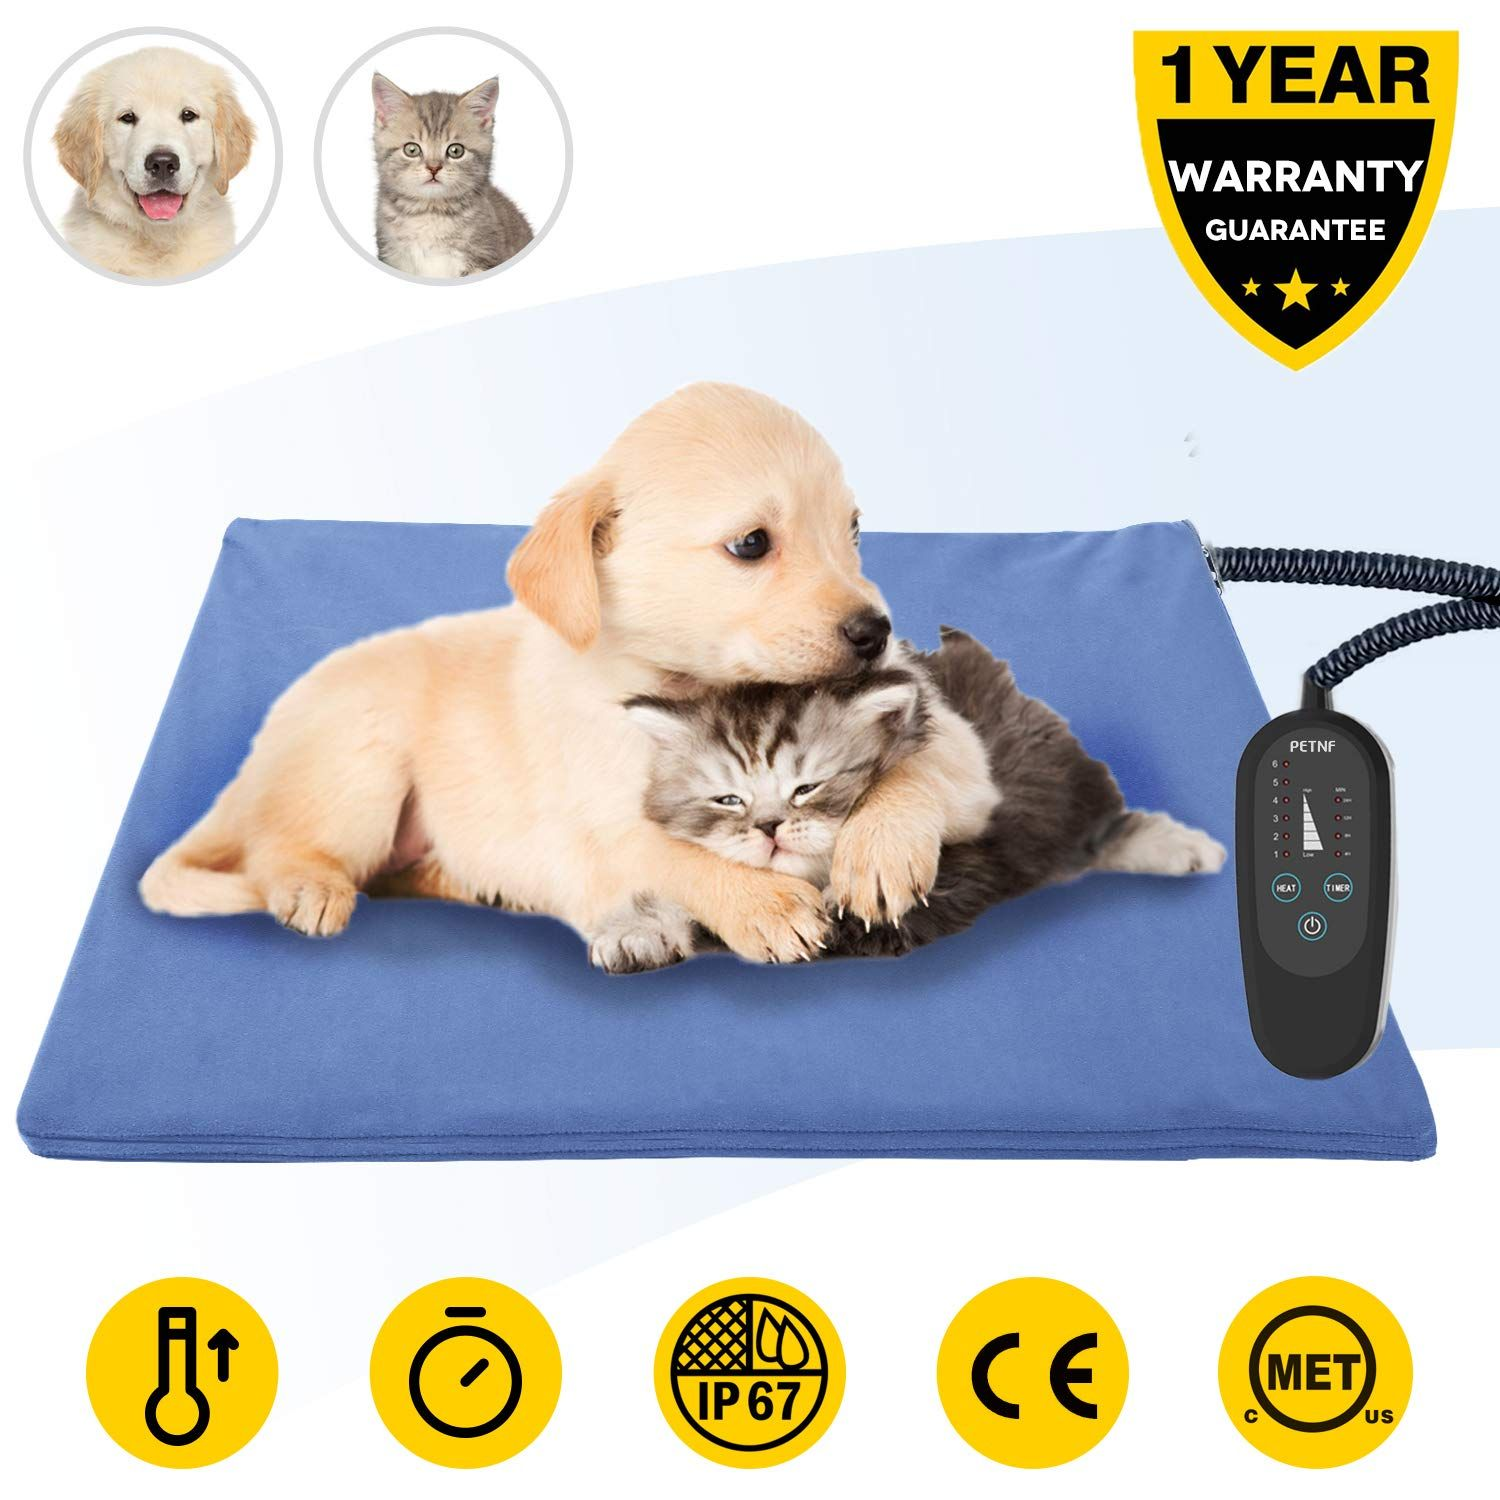 Upgrade Pet Heating Pad With Tim Pet Heating Pad Indoor Pets Dog Bed Mat